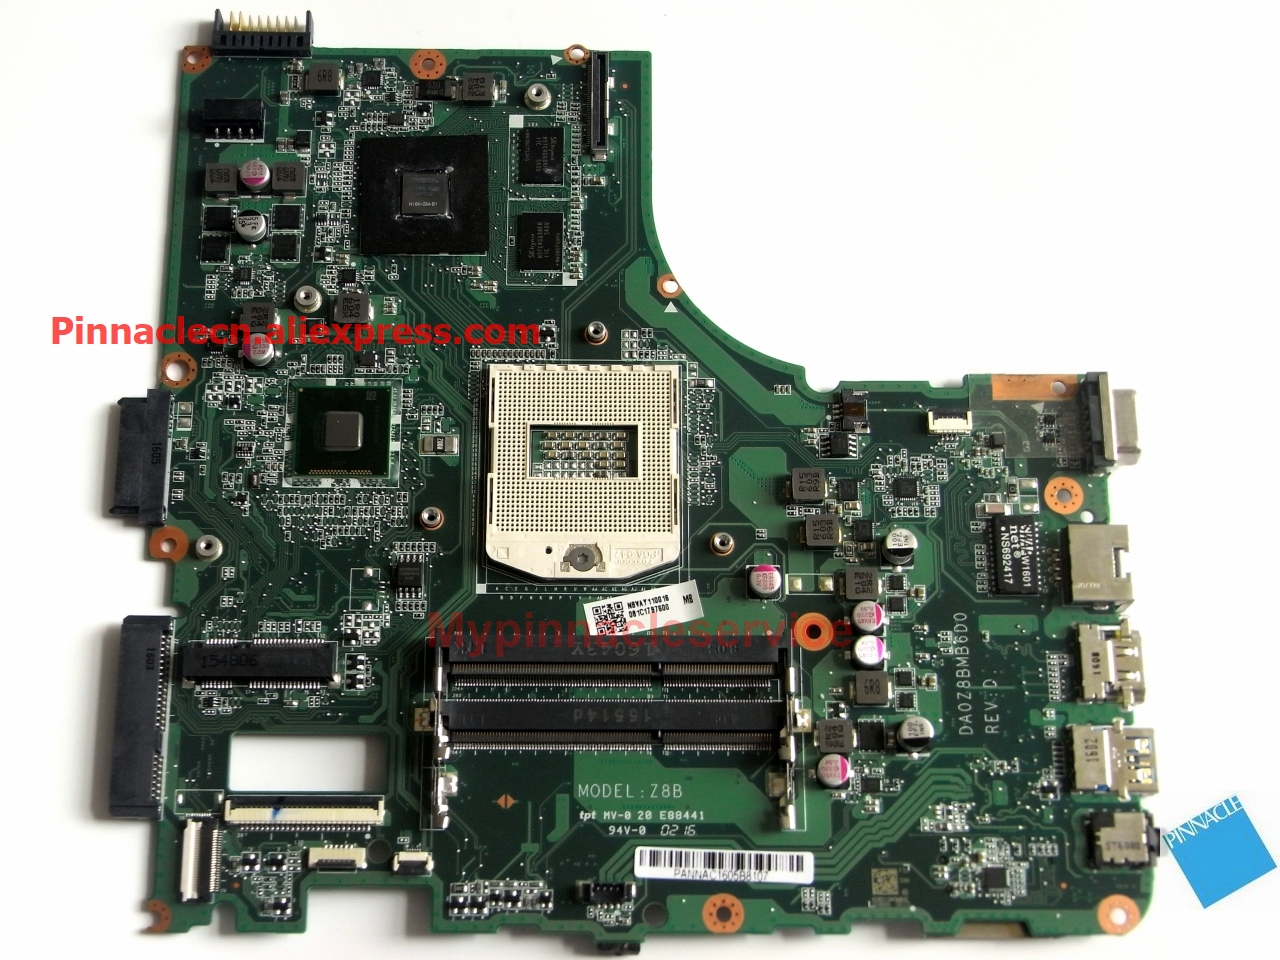 NBVAY11001 Motherboard for Acer  Aspire E5-472G Travelmate TMP246M DA0Z8BMB6D0 Z8BNBVAY11001 Motherboard for Acer  Aspire E5-472G Travelmate TMP246M DA0Z8BMB6D0 Z8B